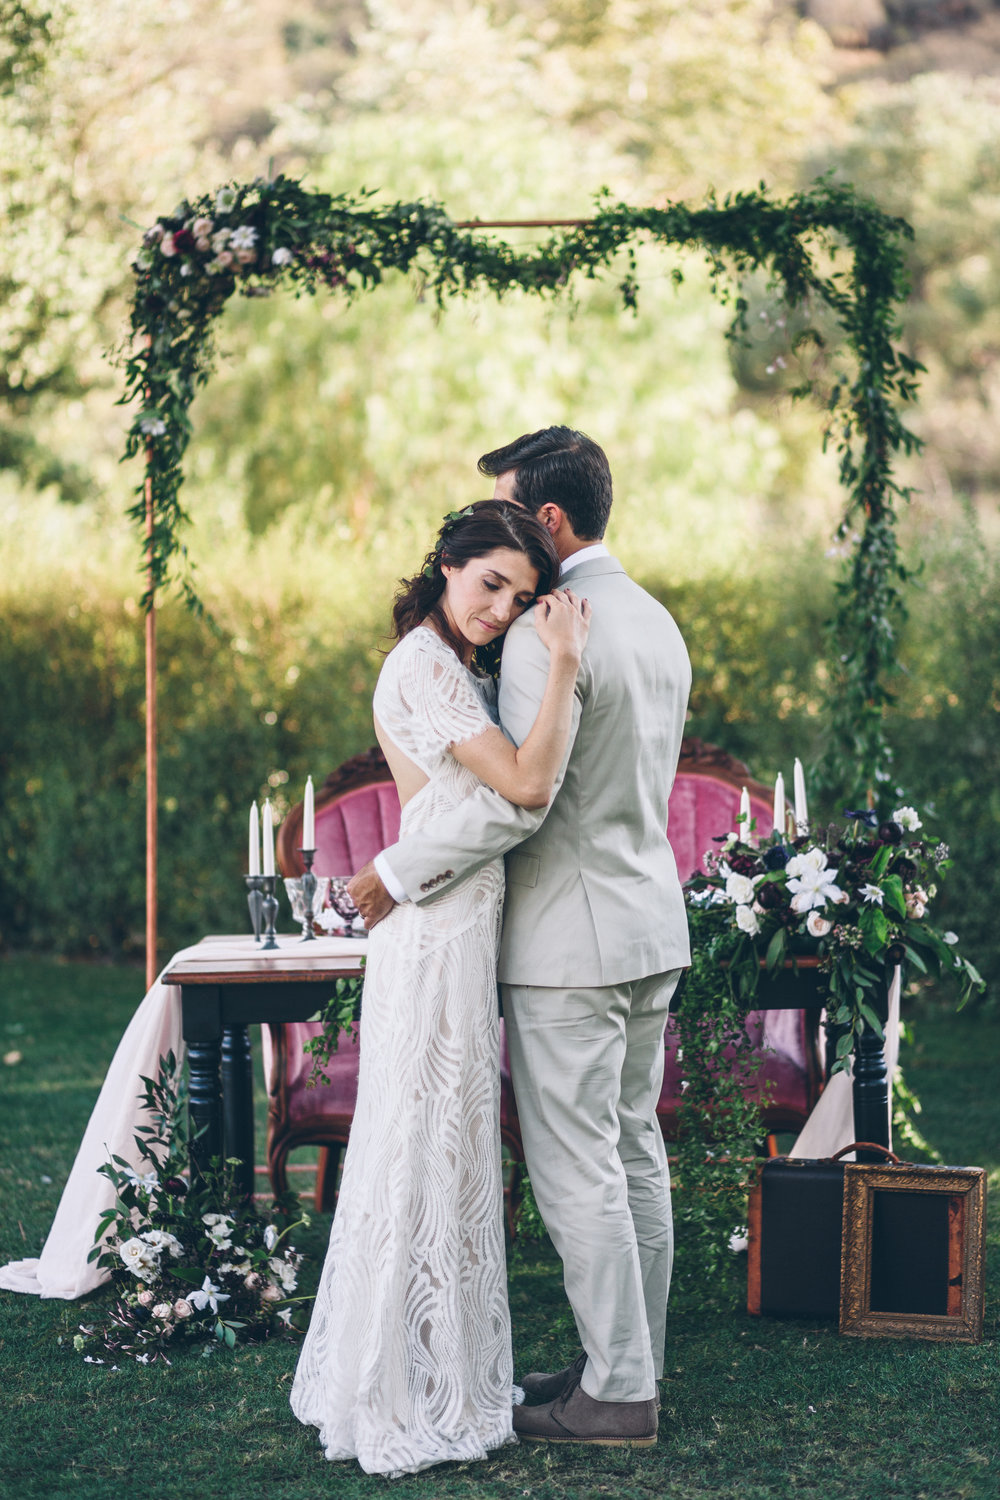 copper arch with hanging jasmine in front of a sweetheart table for a brookview ranch wedding in malibu canyon.jpg